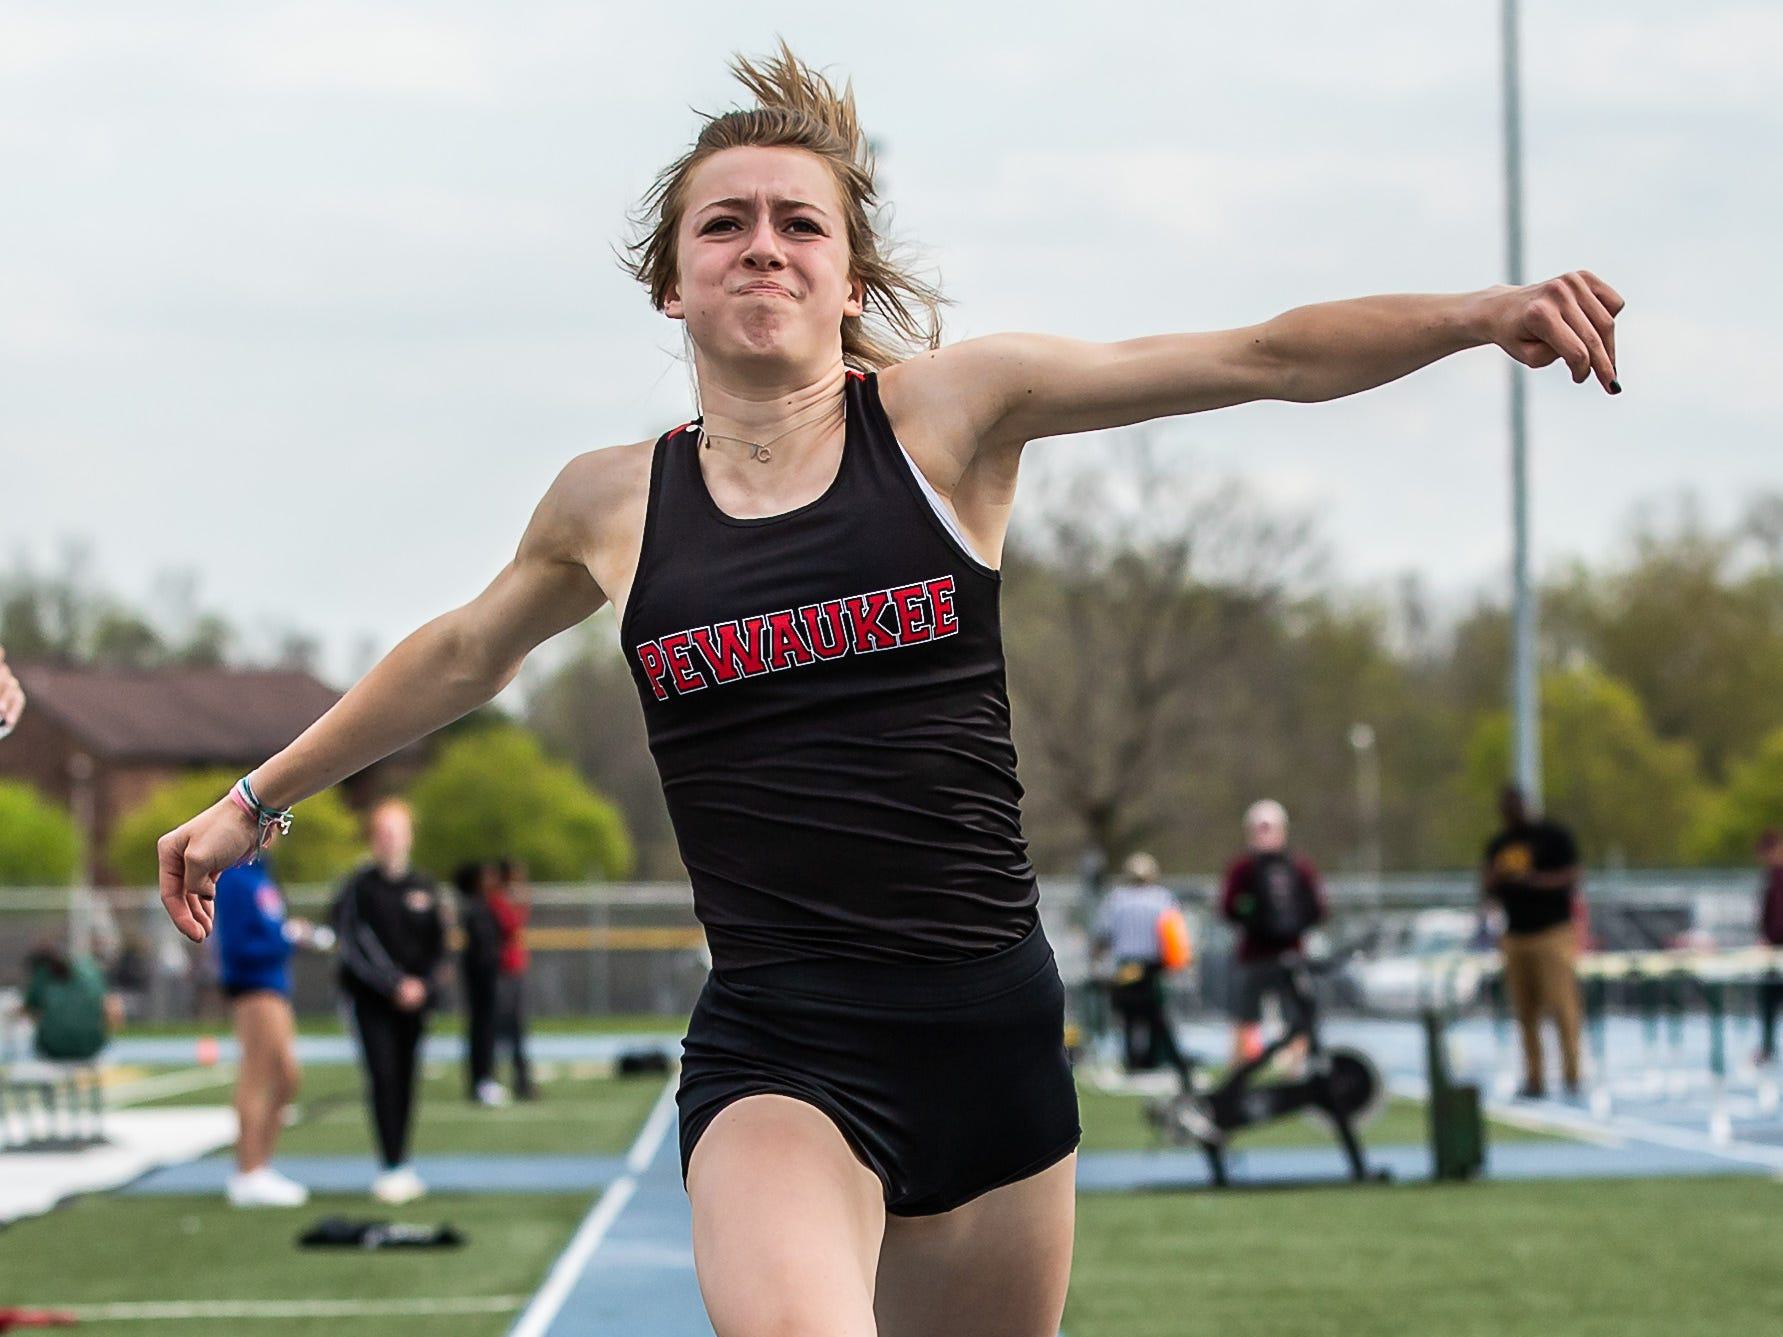 Pewaukee's Jordan Berglin competes in the girls triple jump at the Woodland Conference Track and Field Championships in West Allis on Tuesday, May 14, 2019. Berglin placed third in the event.